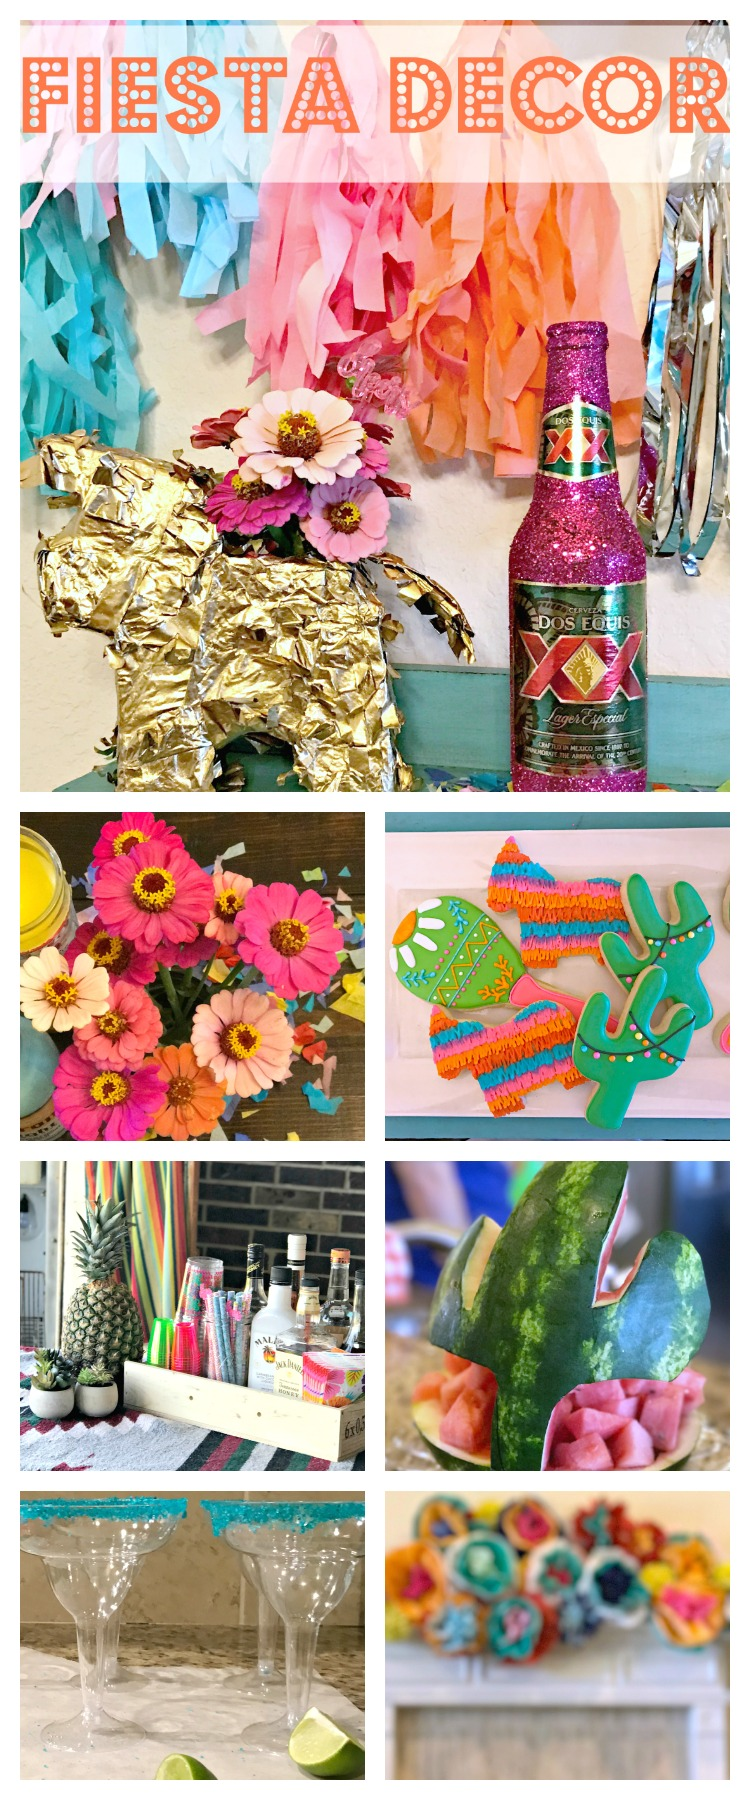 Throwing a Fiesta?! It's the perfect theme for any occasion! Get tons of Fiesta decor ideas & inspiration here!